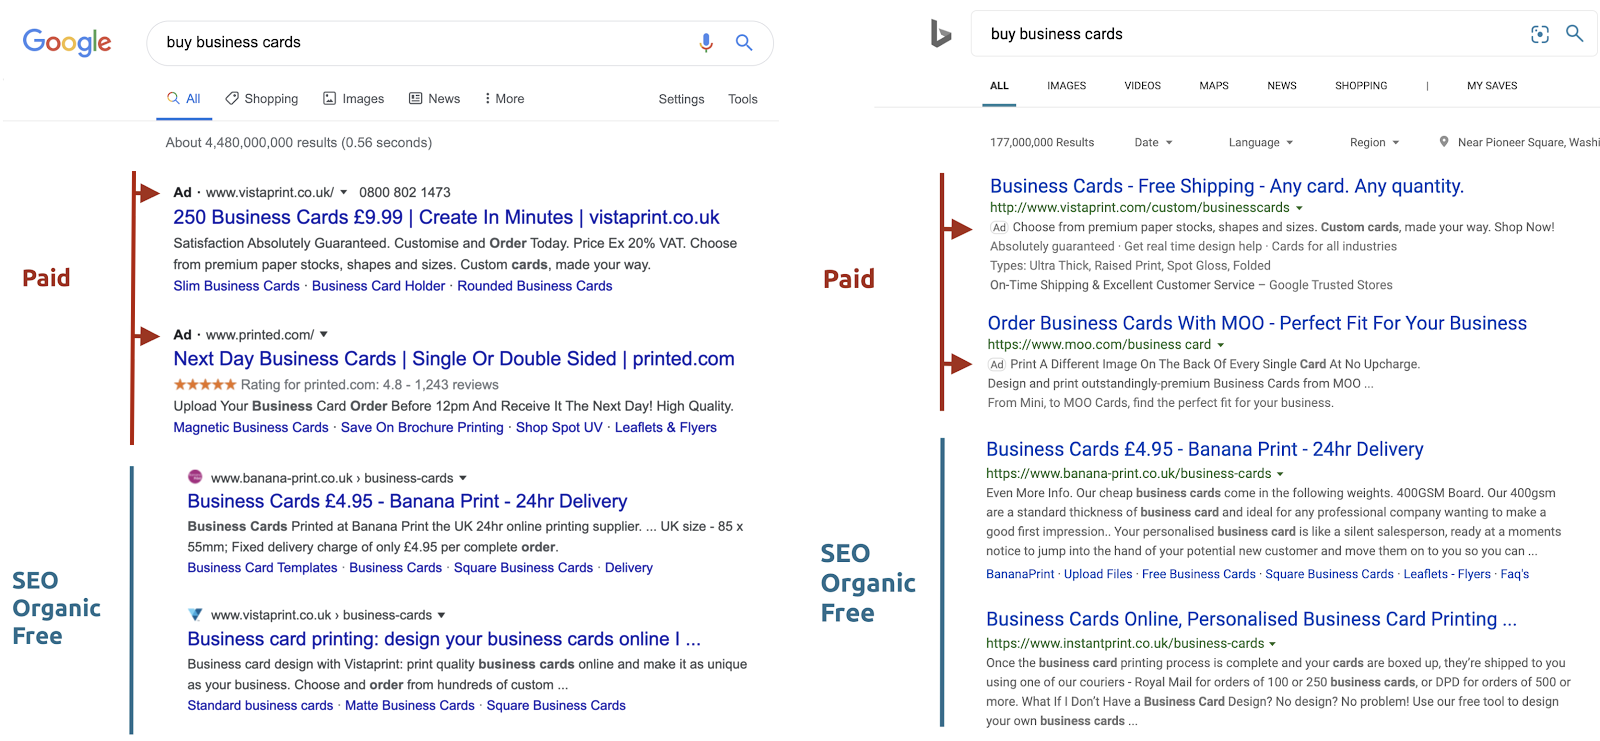 SERP results example: Paid and Free